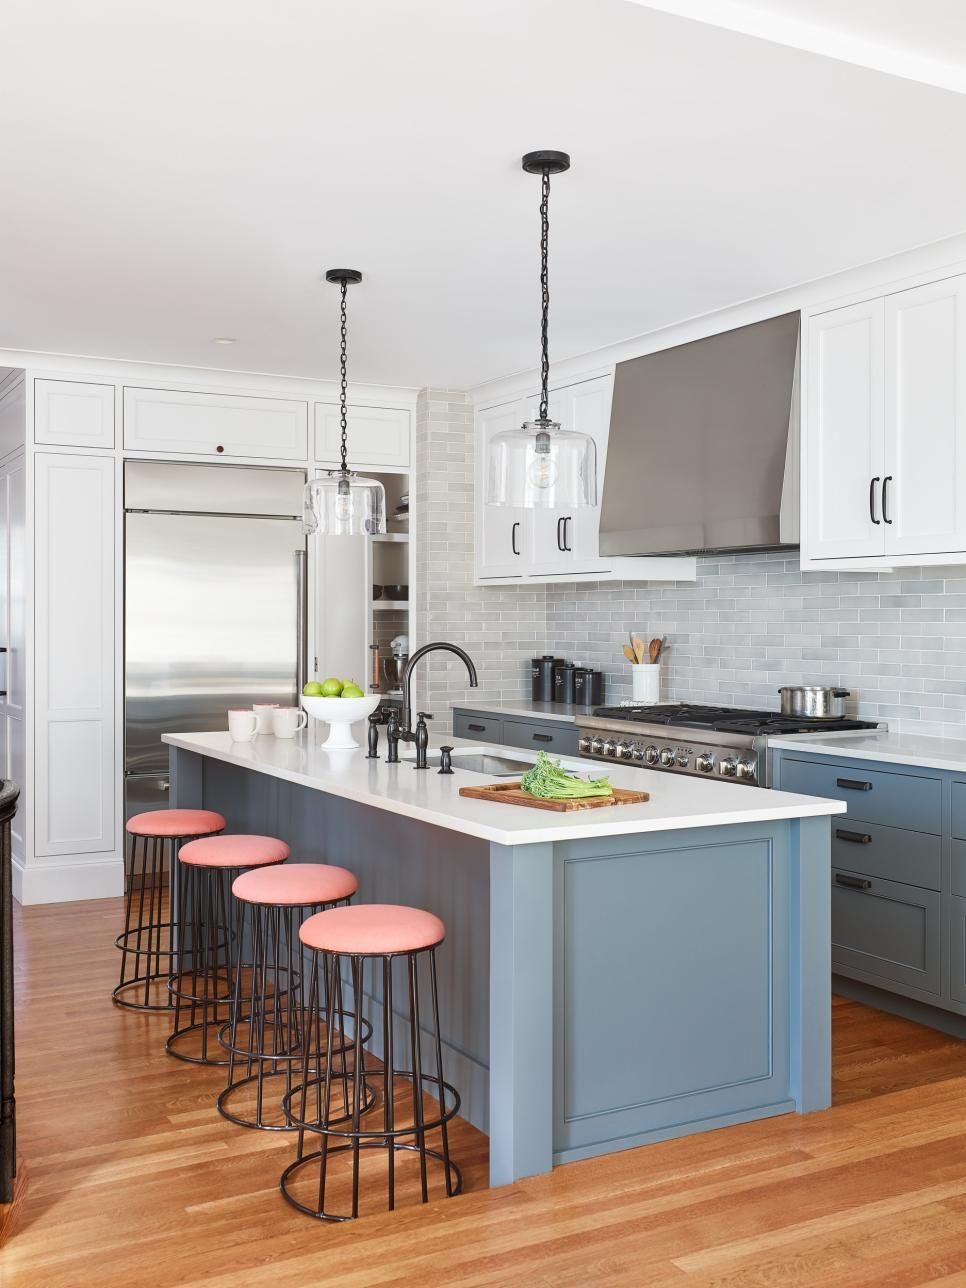 Color Theory 101 Analogous Complementary And The 60 30 10 Rule Hgtv In 2020 Kitchen Colors Top Kitchen Designs Kitchen Design Small